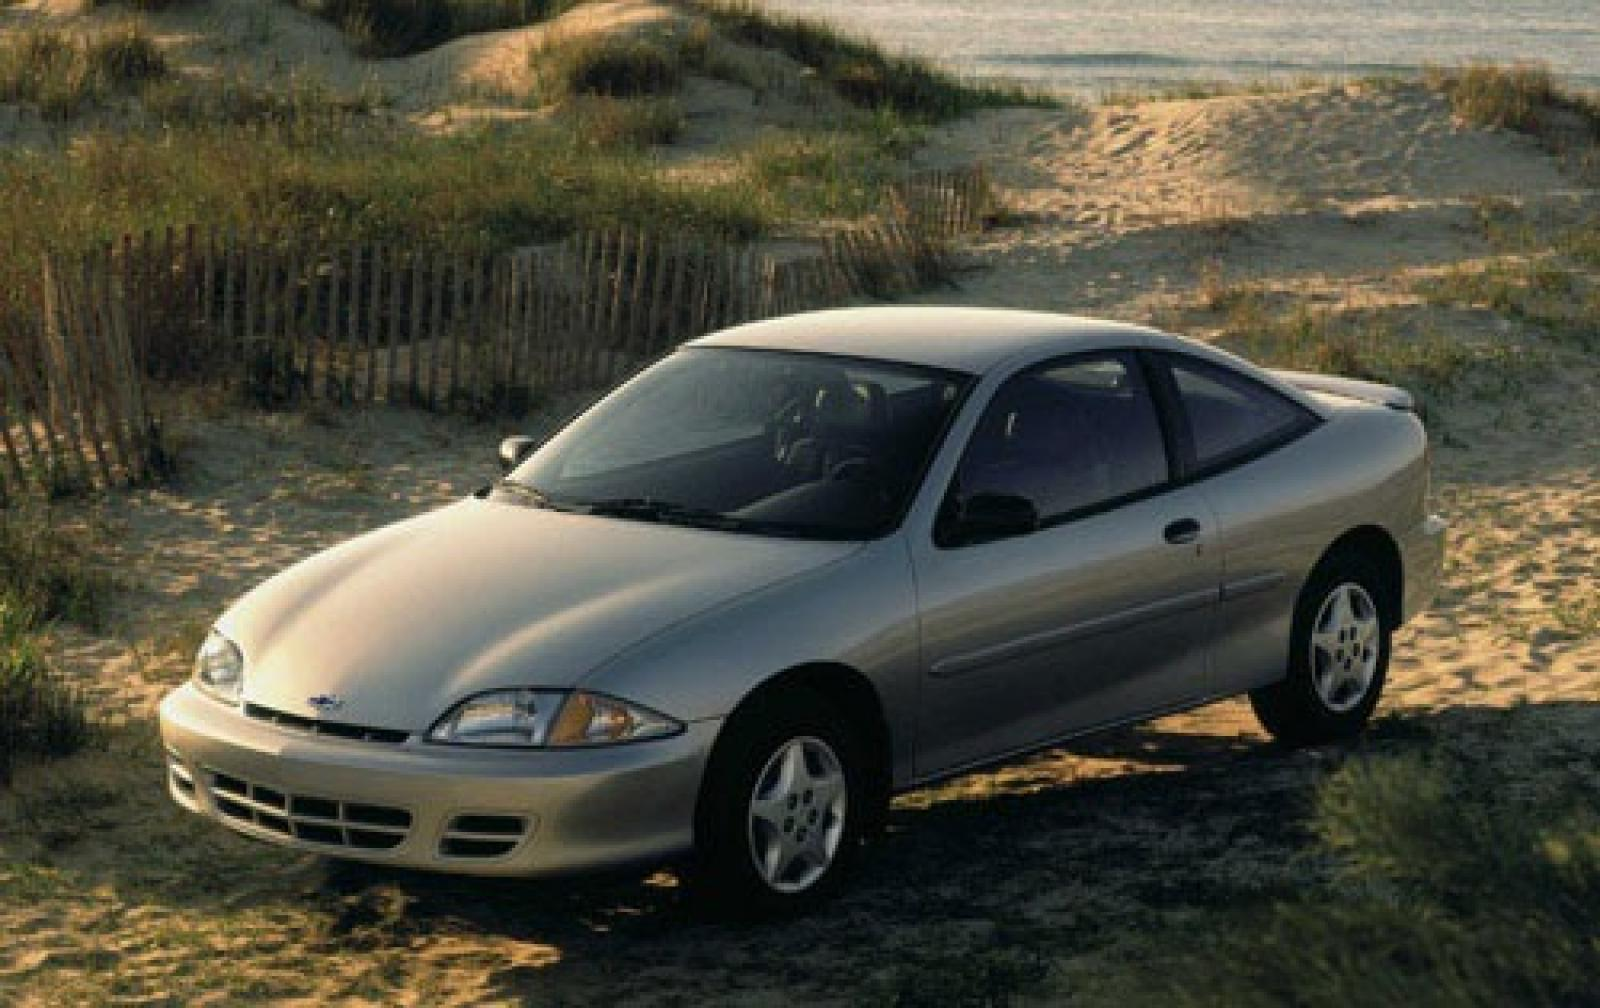 2001 chevrolet cavalier information and photos zombiedrive for Motor oil for 2002 chevy cavalier